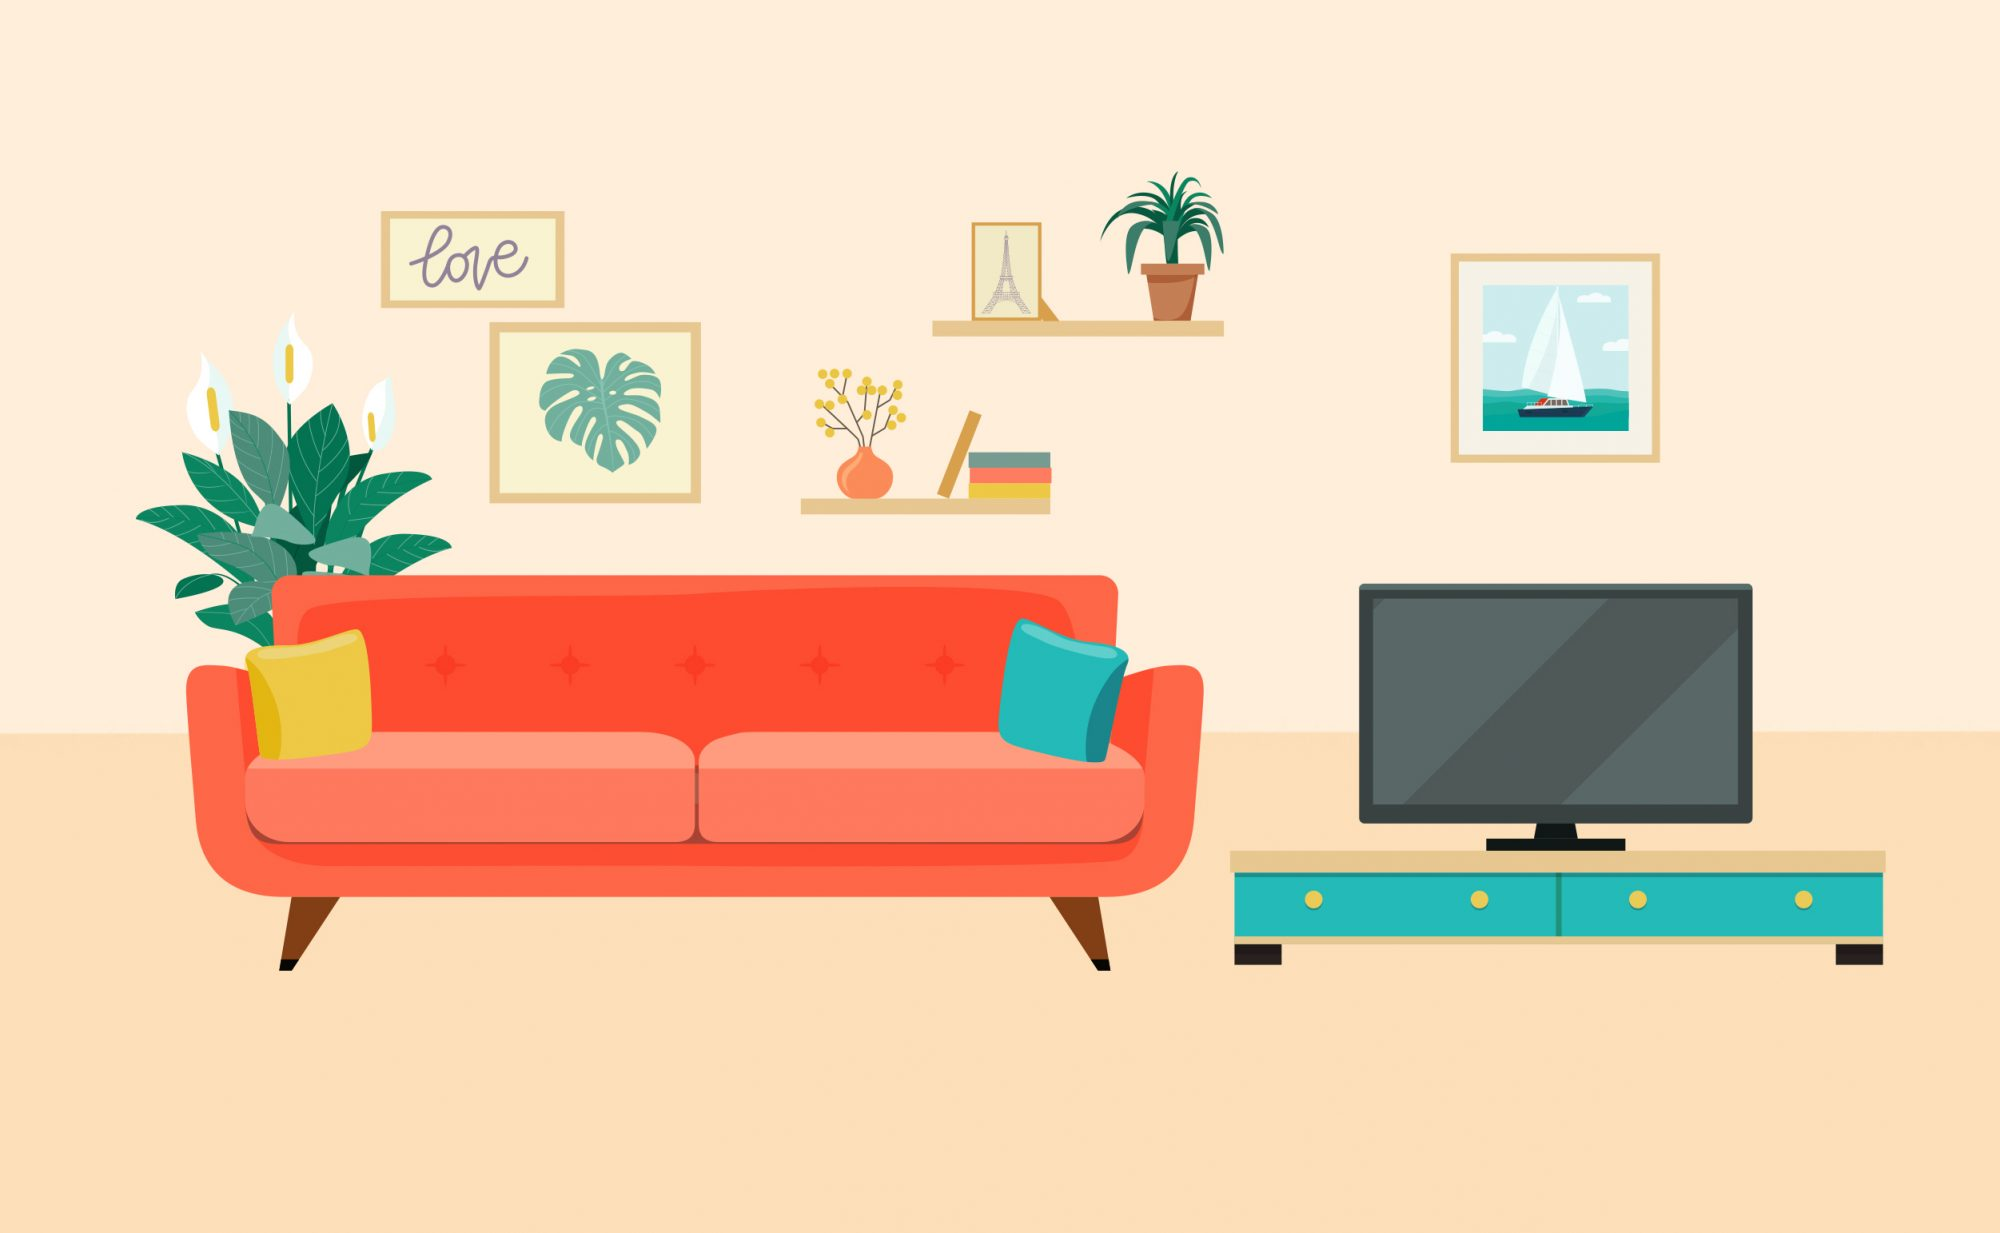 Best Place to Buy Furniture for Your First Apartment, living room illustration